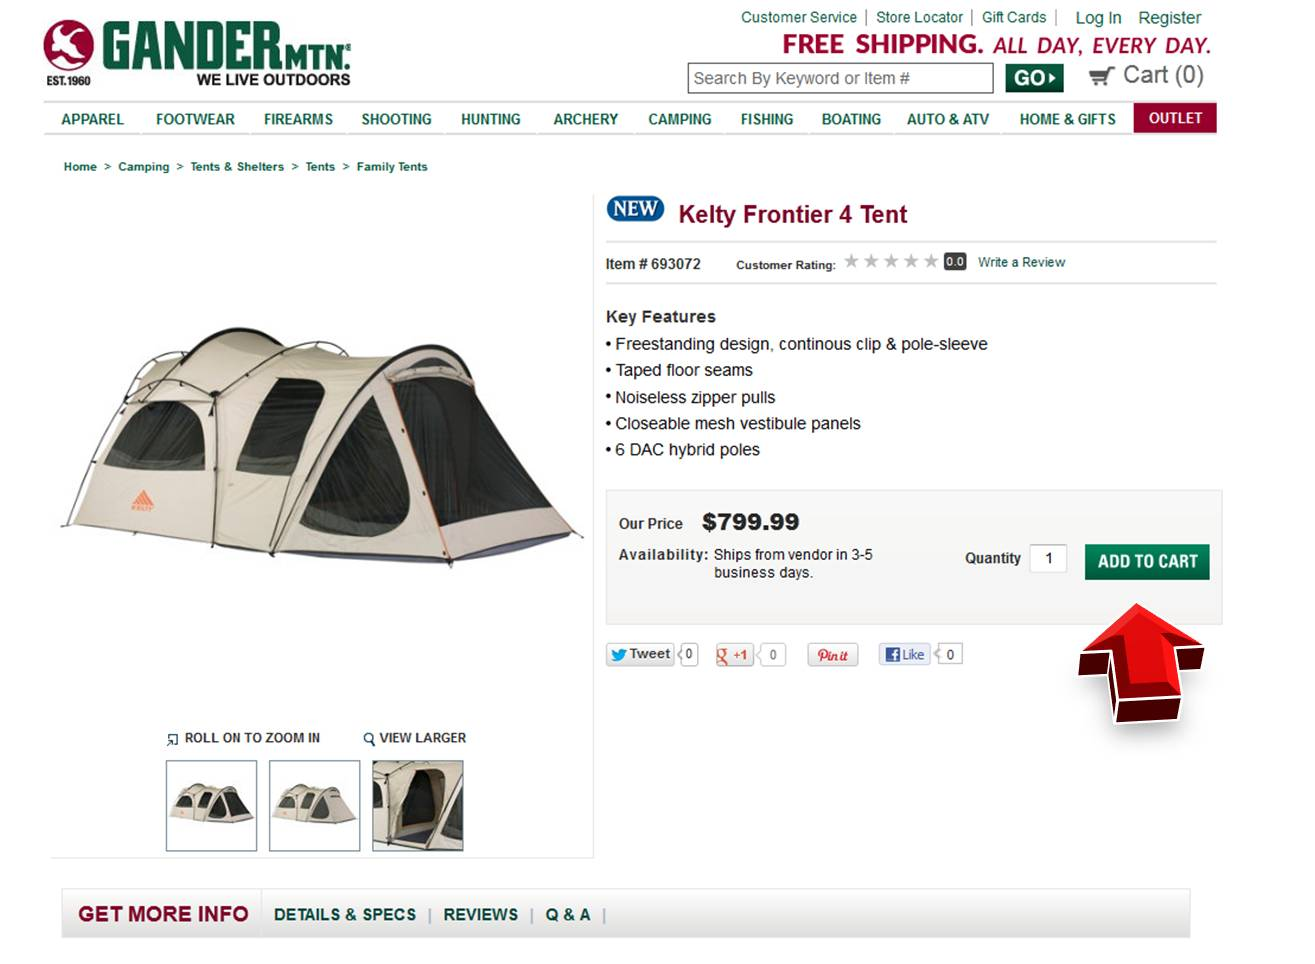 Gander mountain coupon codes